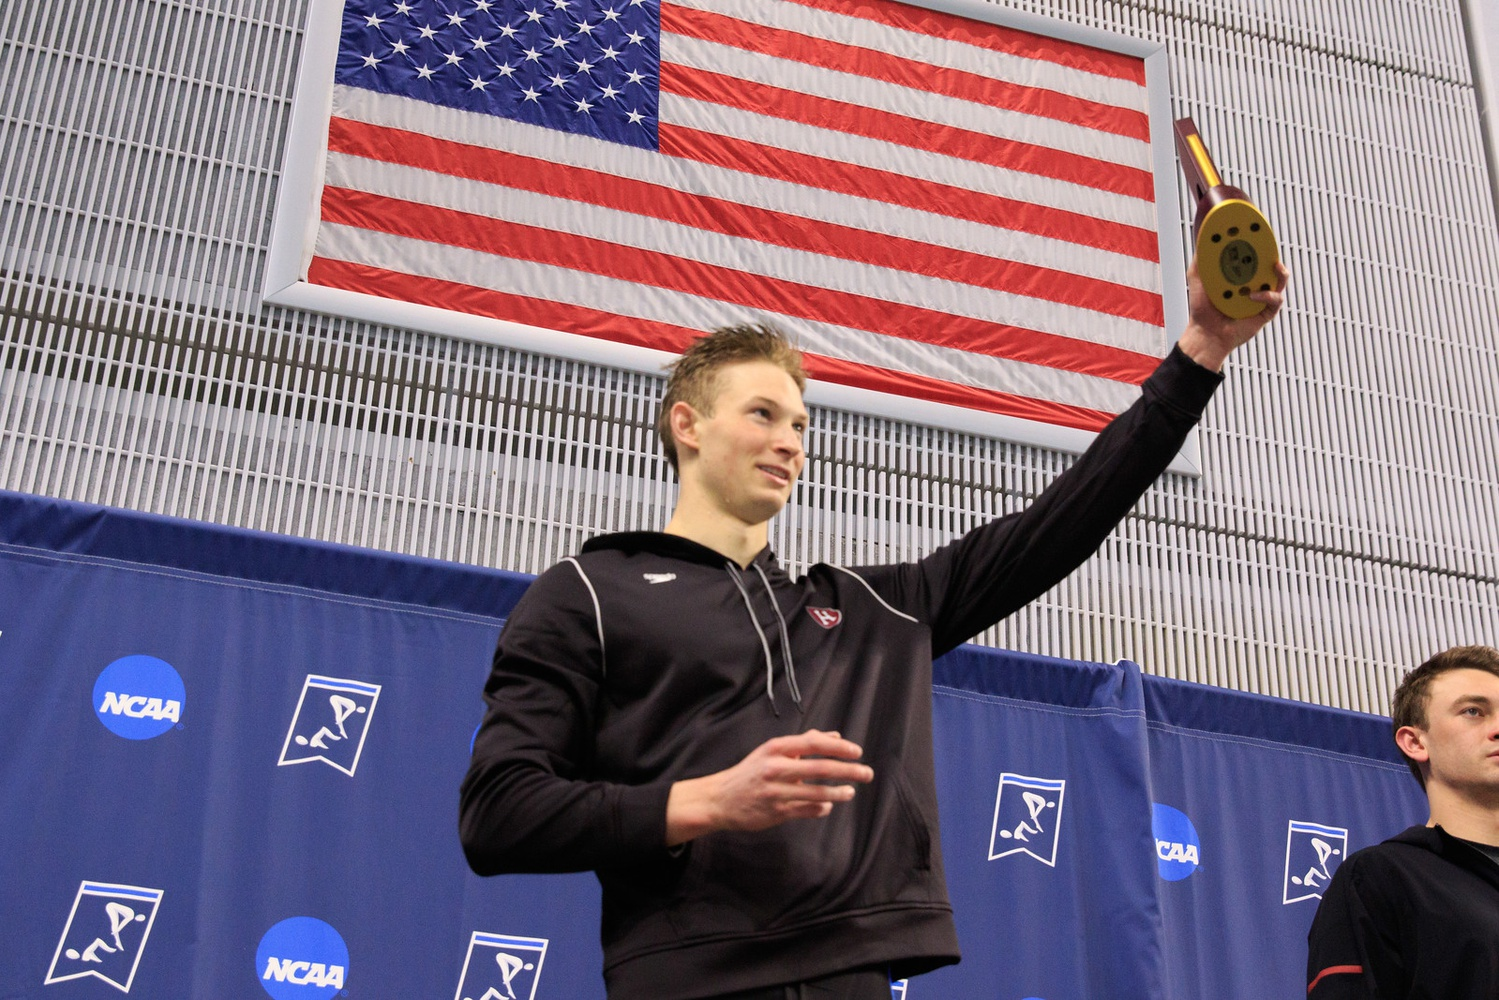 Dean Farris won two events in the NCAA Championships this season.